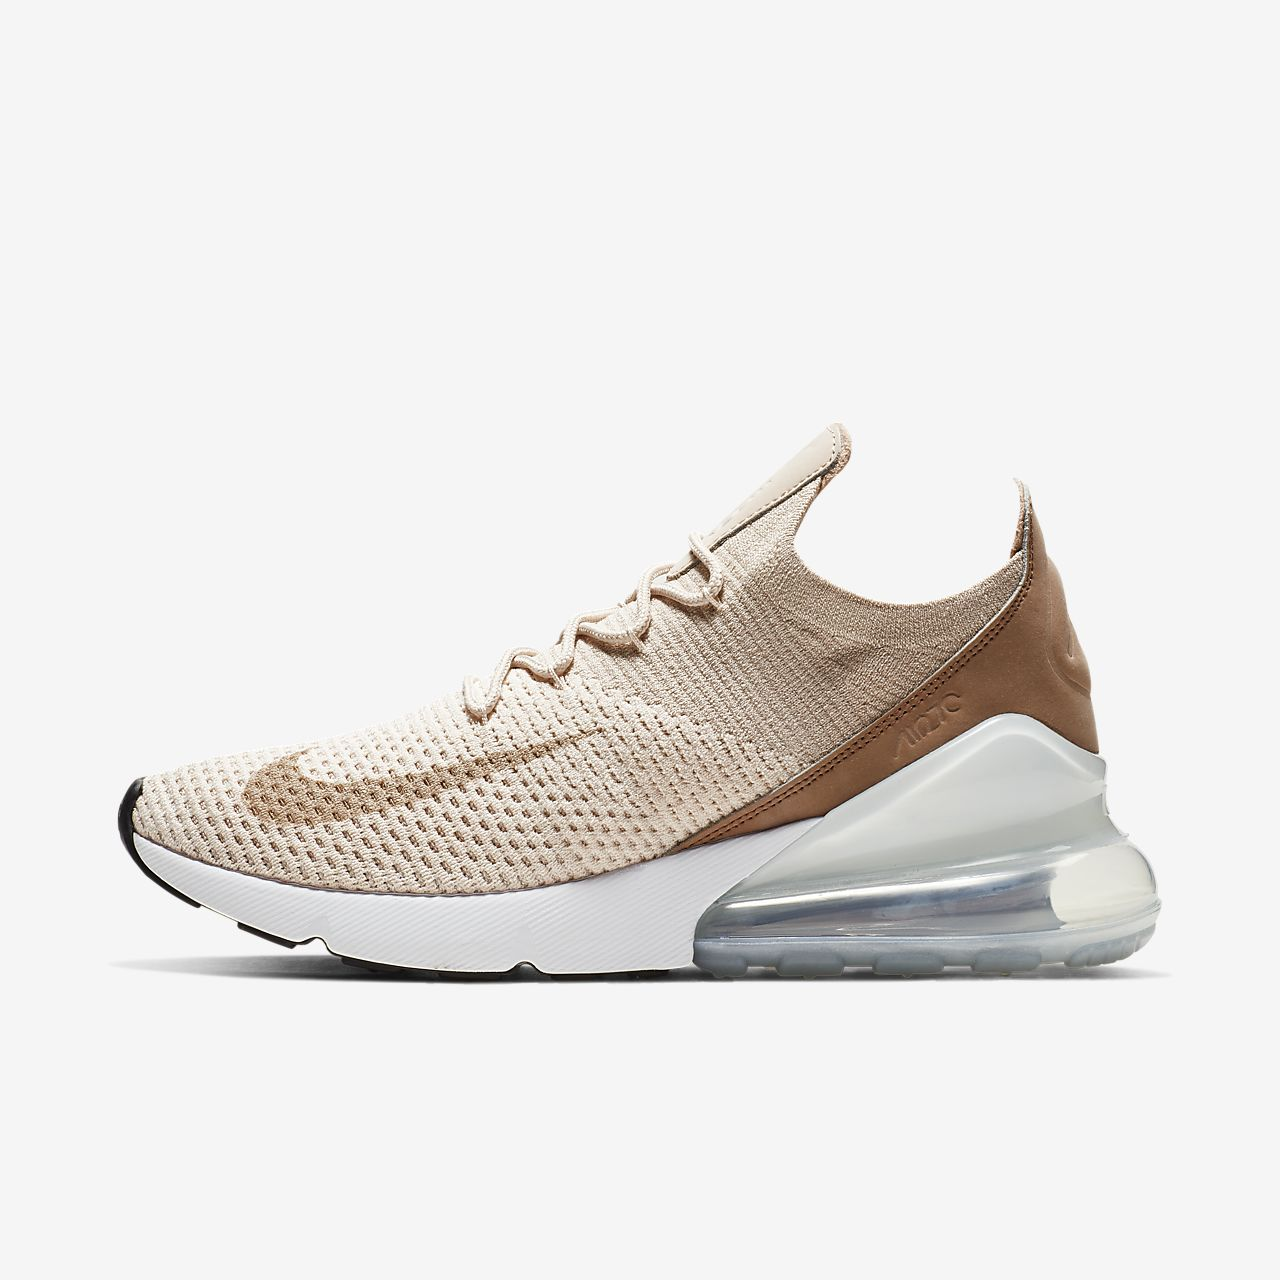 nike air max 270 flyknit femme france